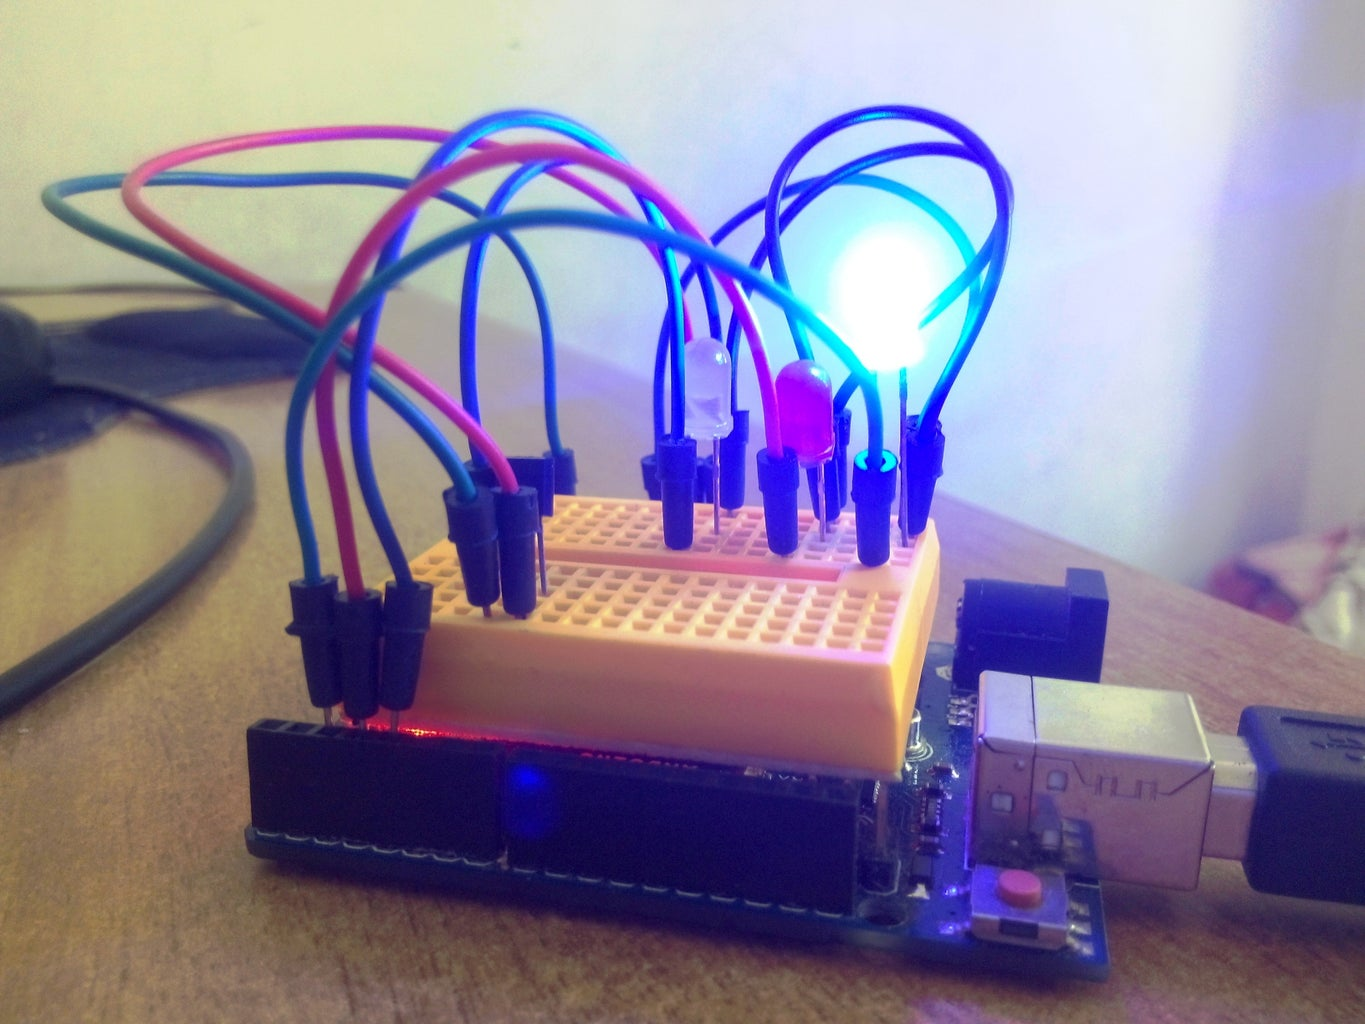 Temperature Controlled LEDs